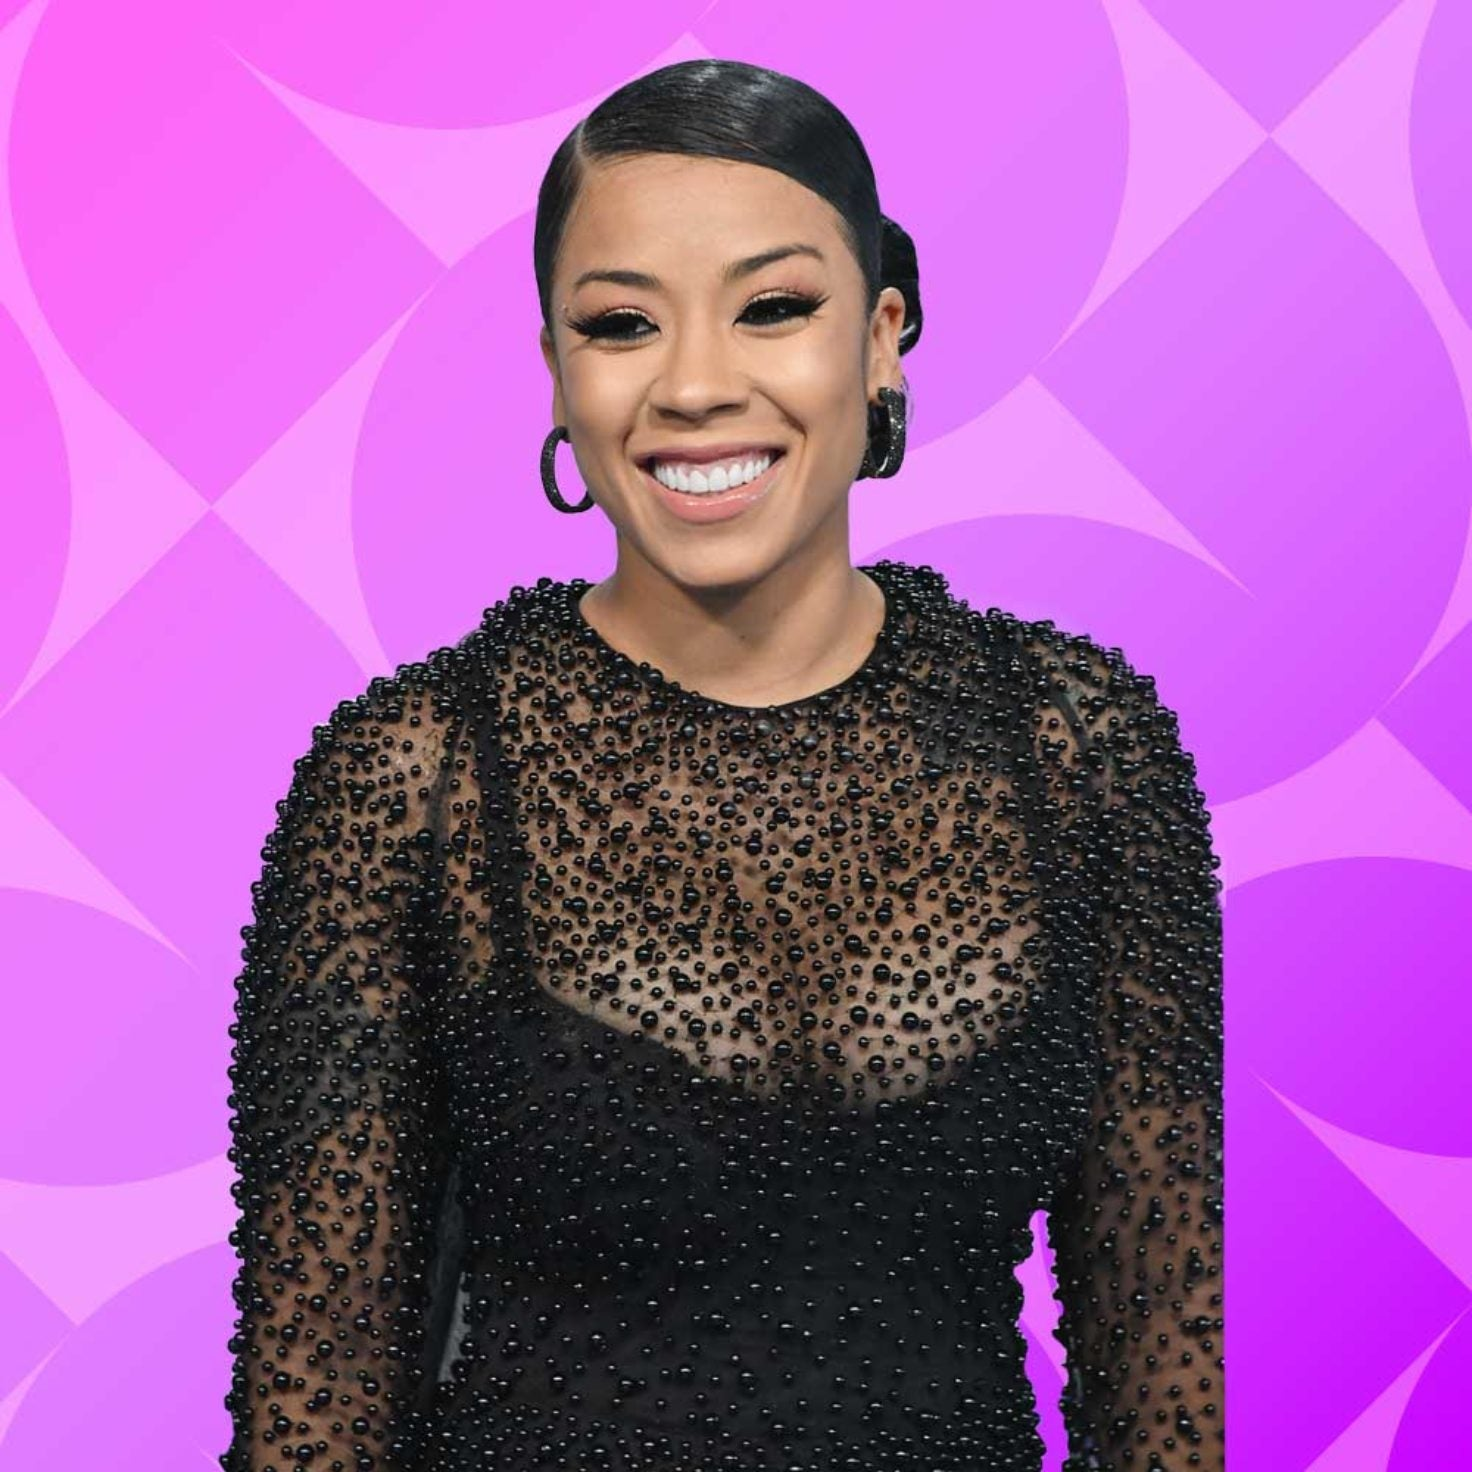 Surprise! Keyshia Cole Is Pregnant With Baby Number 2